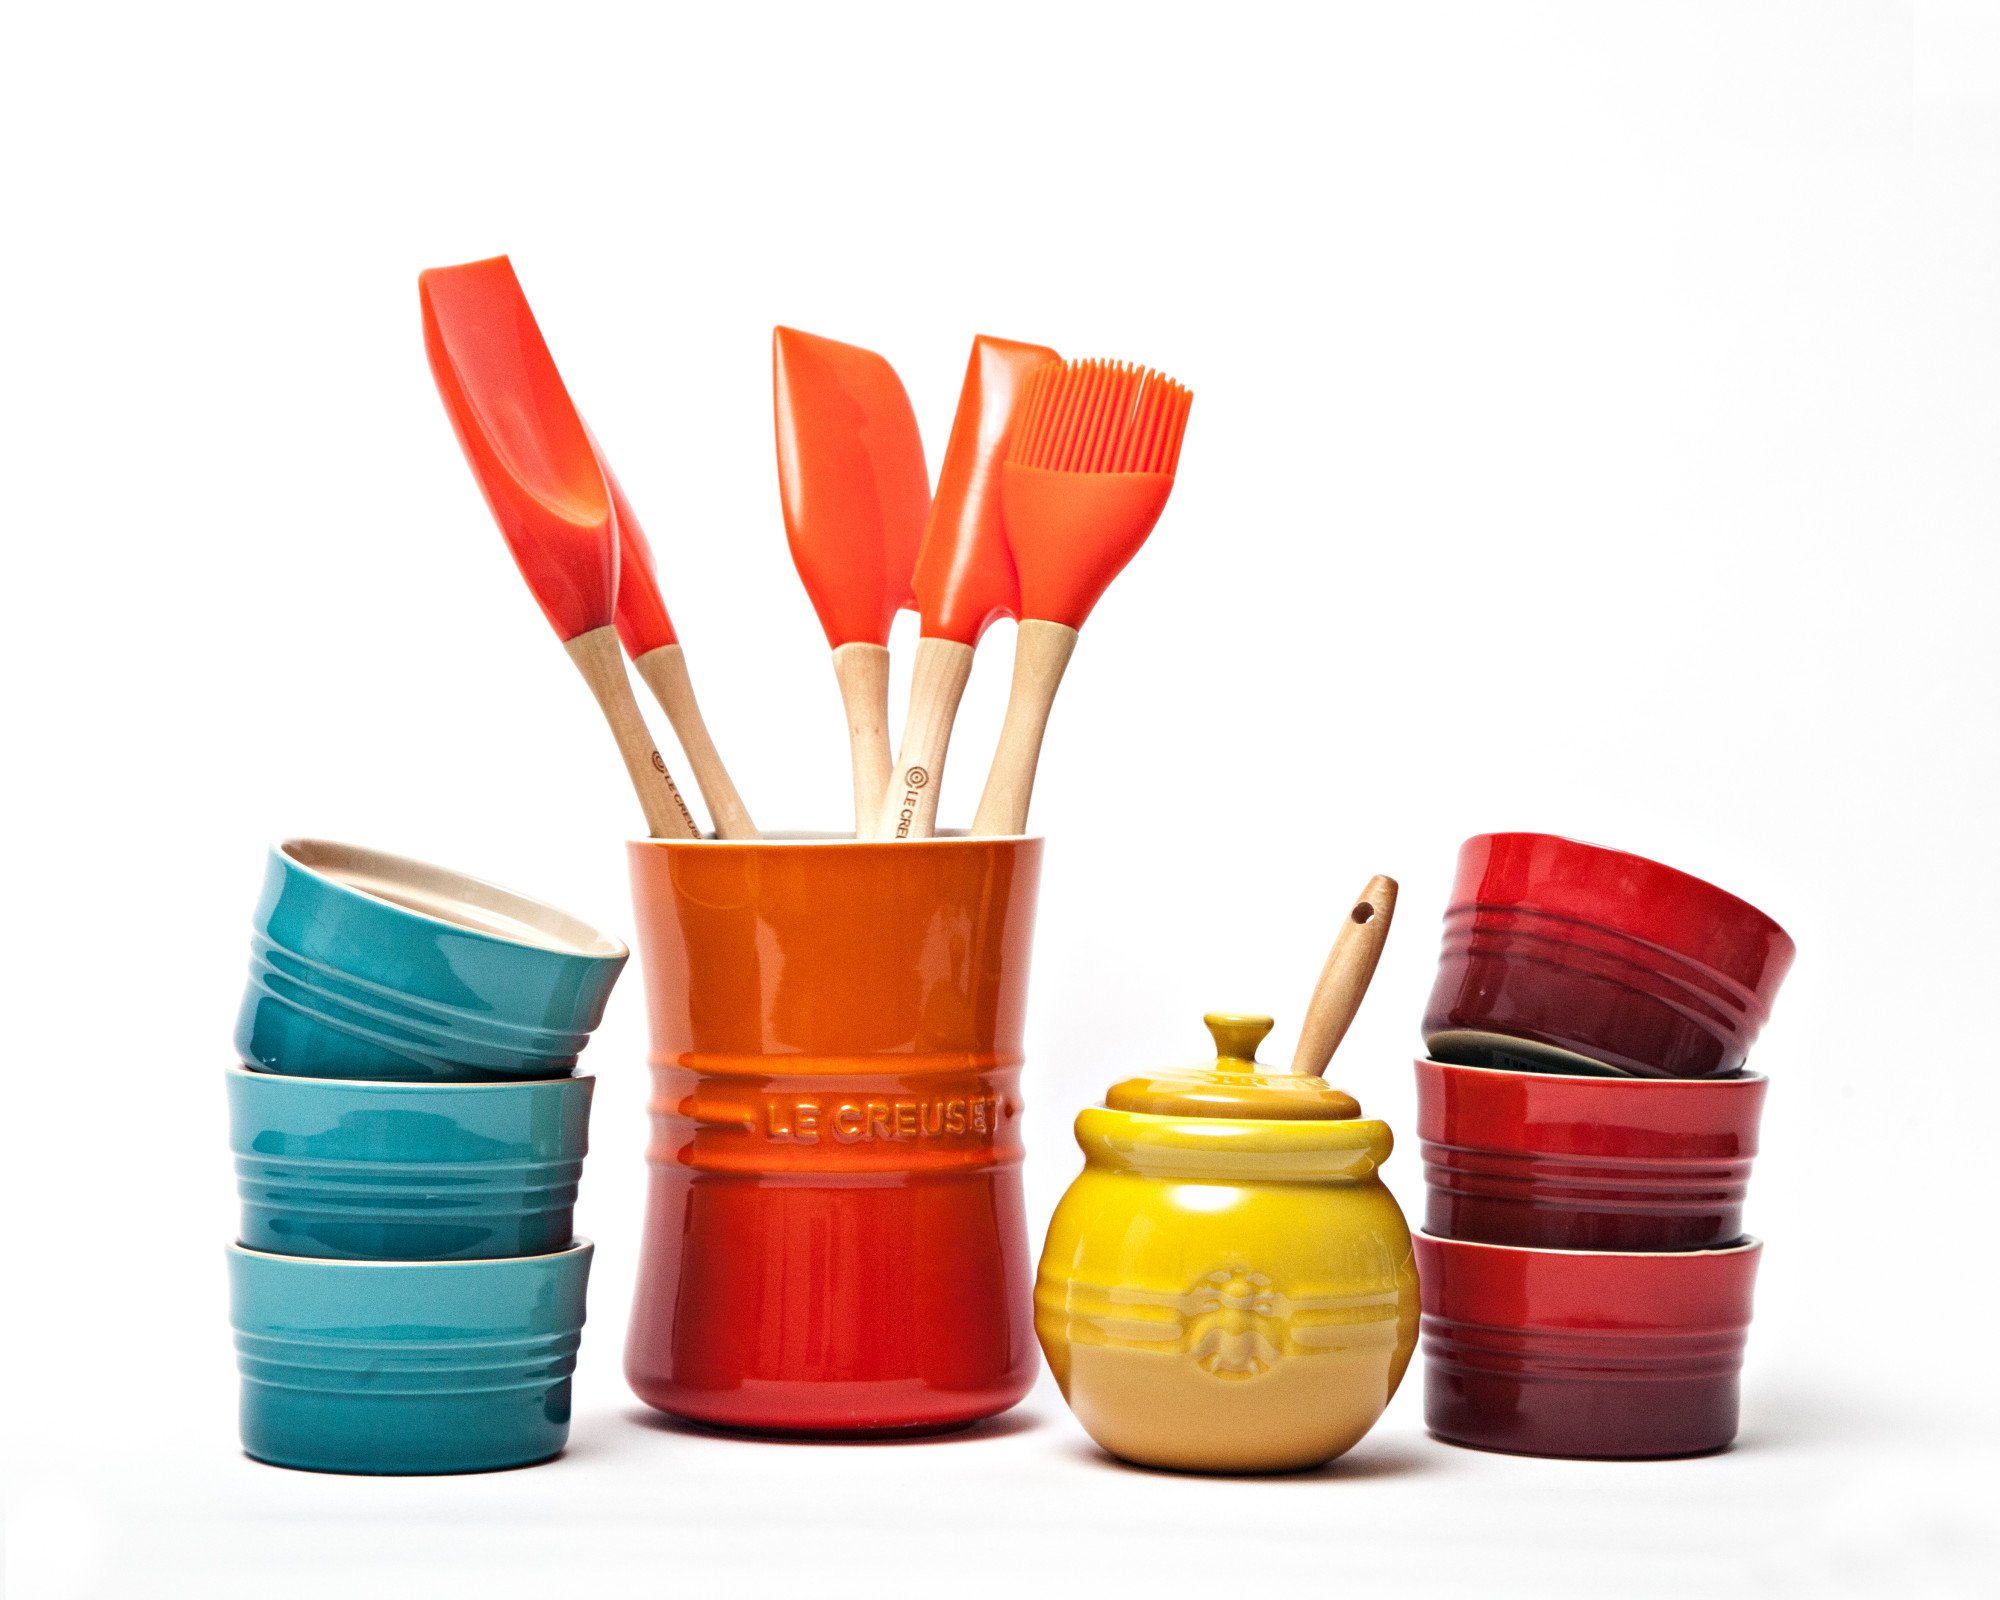 Le Creuset crock with cooking utsensils in flame orange, ramekins in teal blue and red, and honey pot in yellow